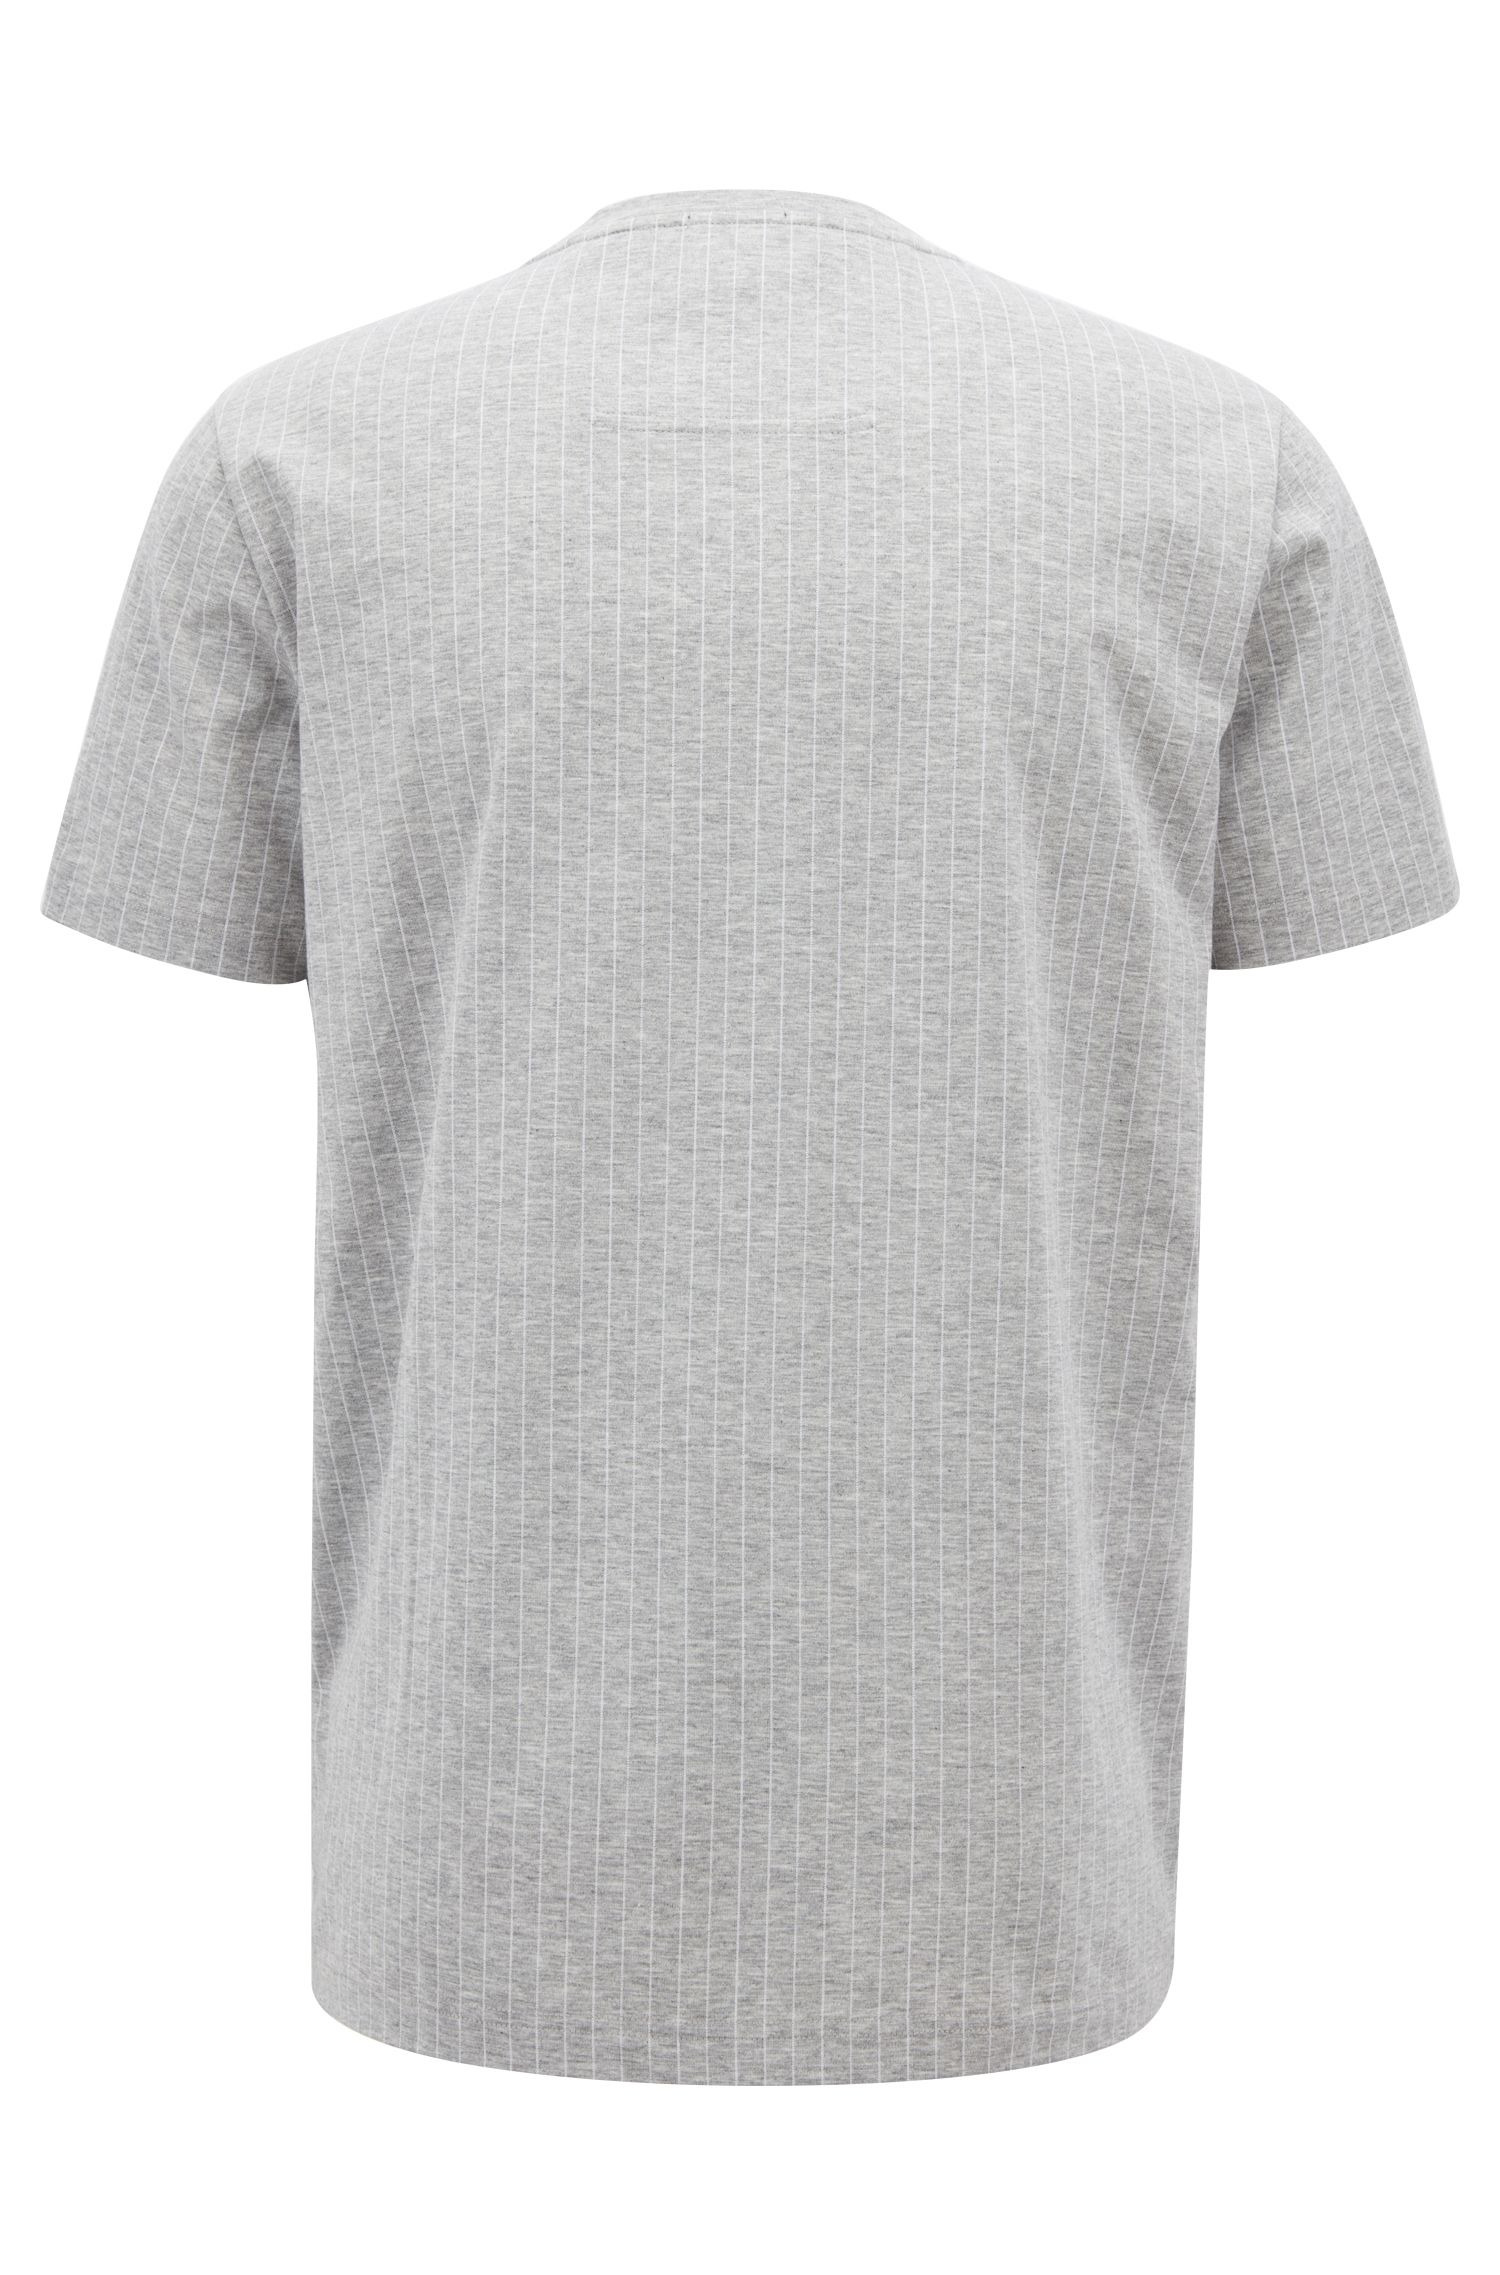 Pinstripe T-shirt in mercerized cotton with flock-print logo, Light Grey